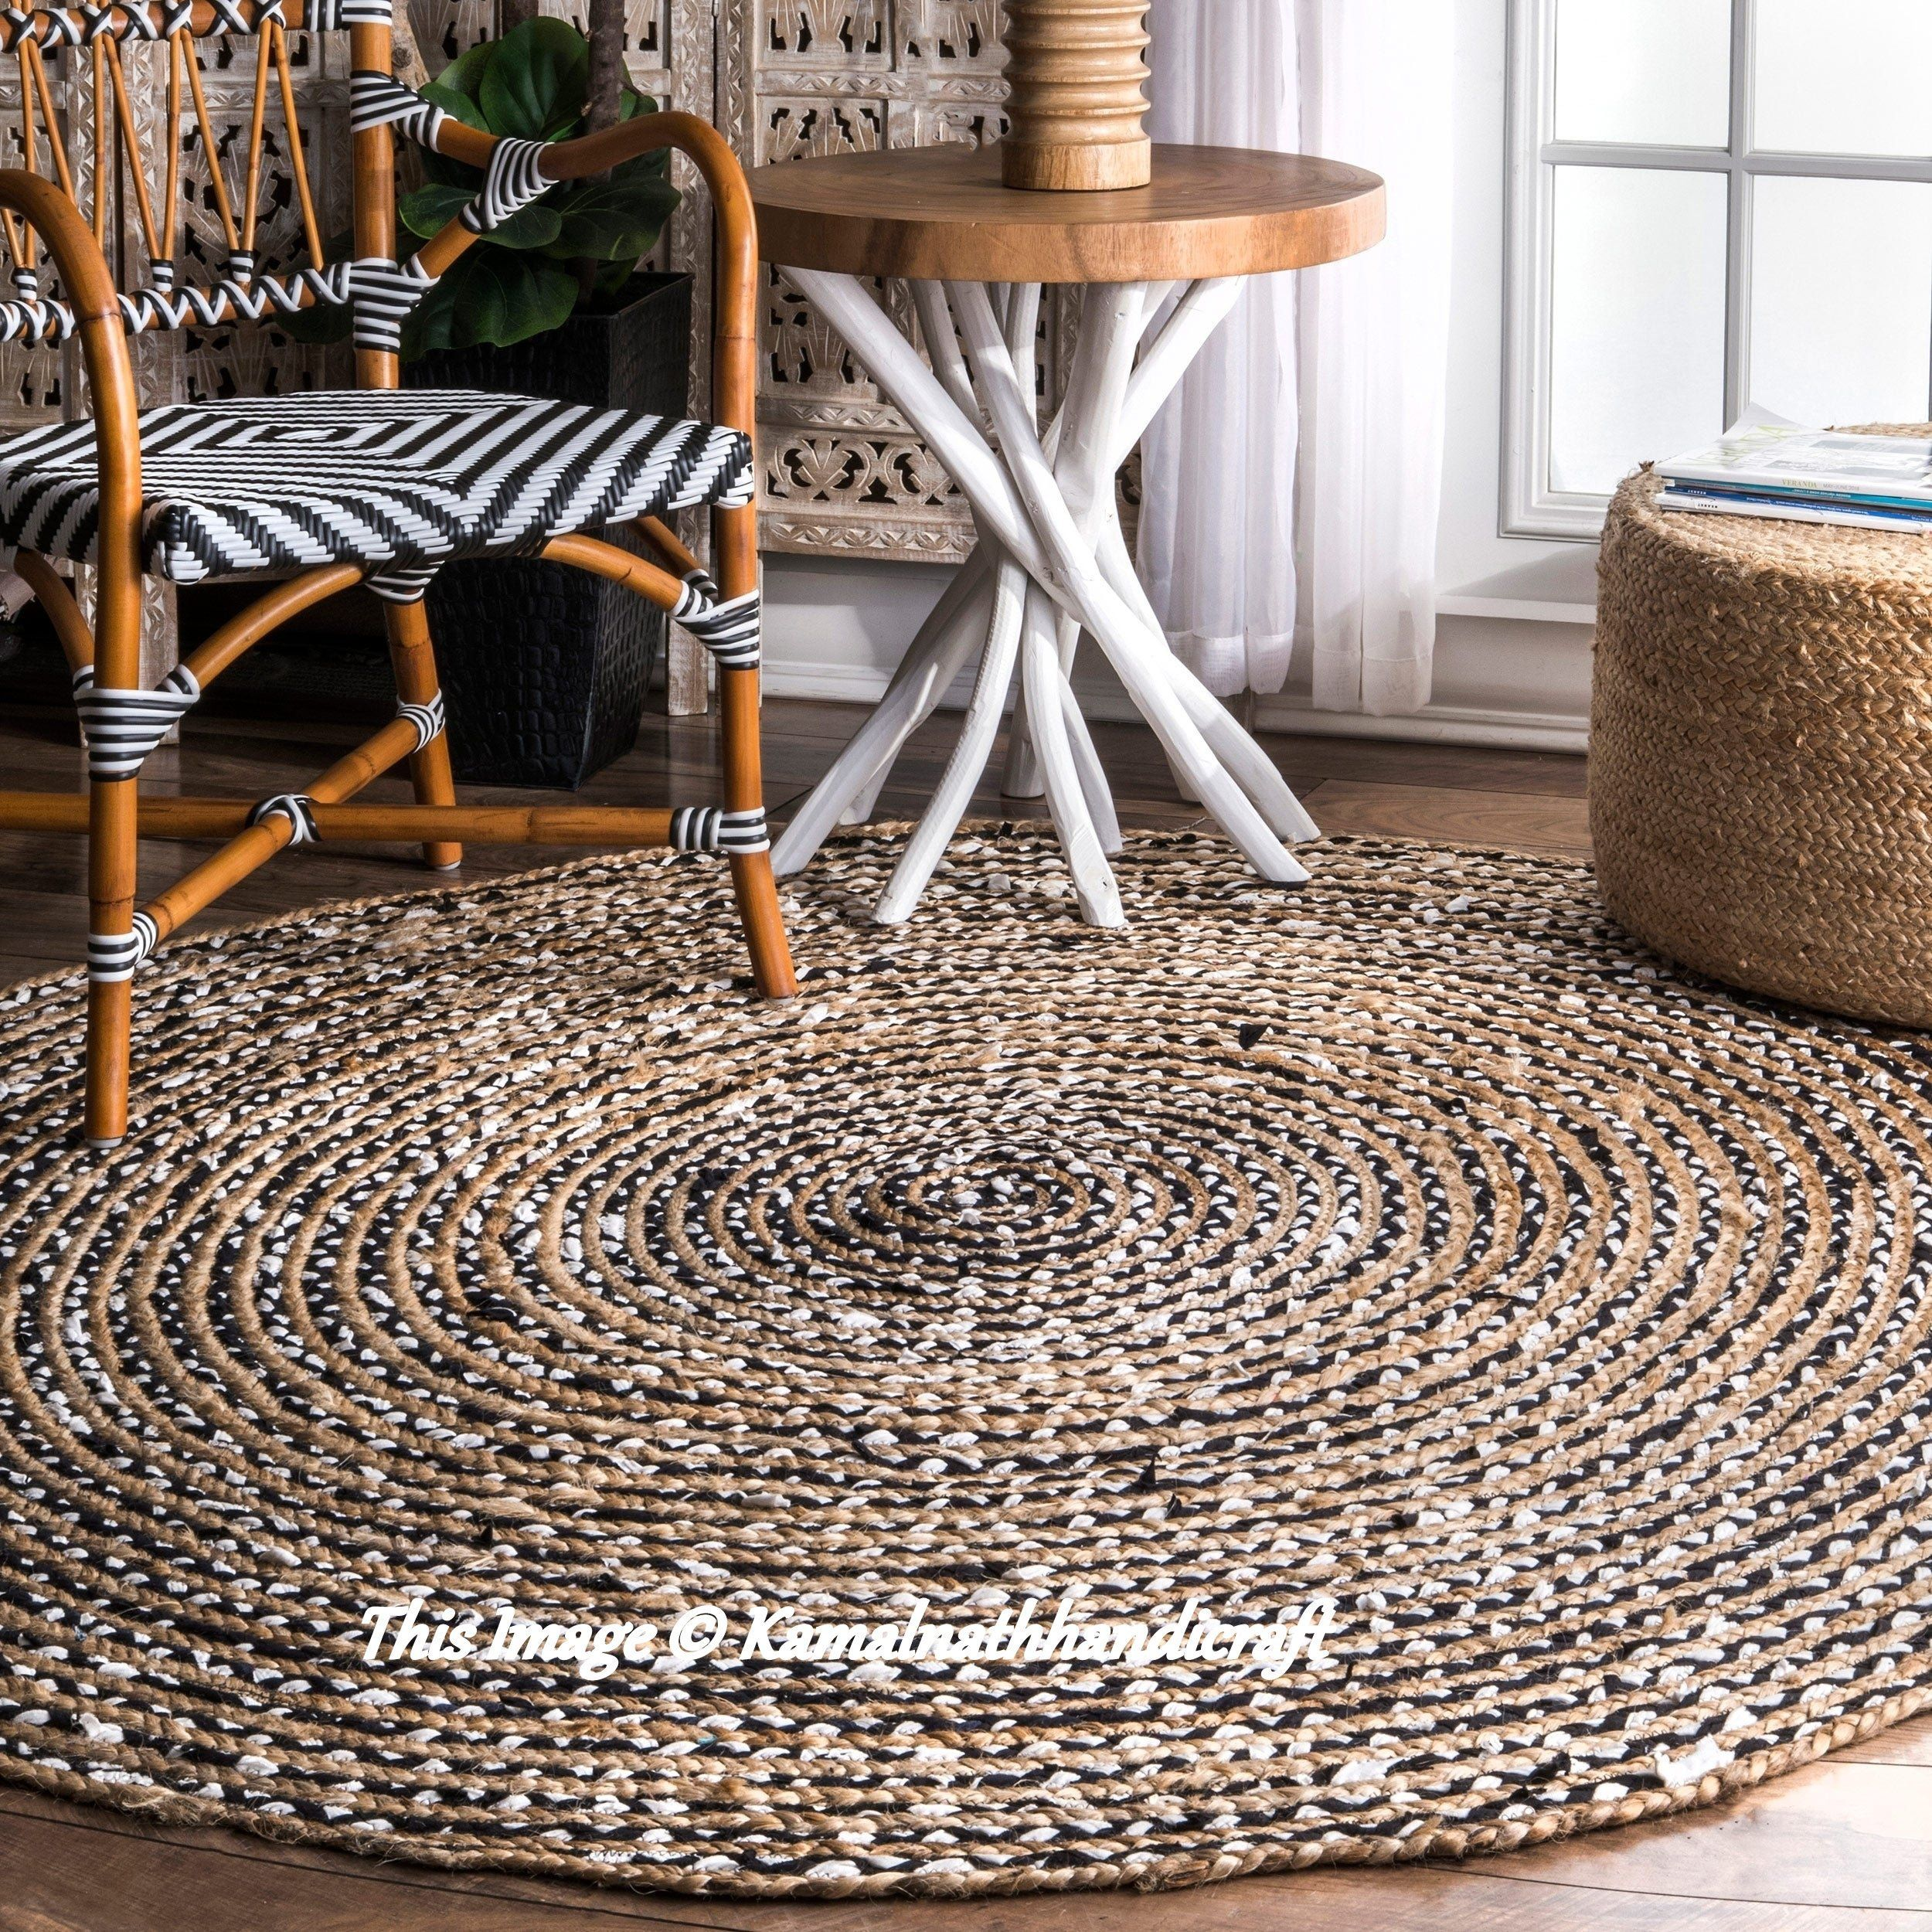 Hand Braided Bohemian Colorful Cotton Chindi Area Rug Multi Etsy In 2020 Jute Round Rug Braided Area Rugs Jute Area Rugs